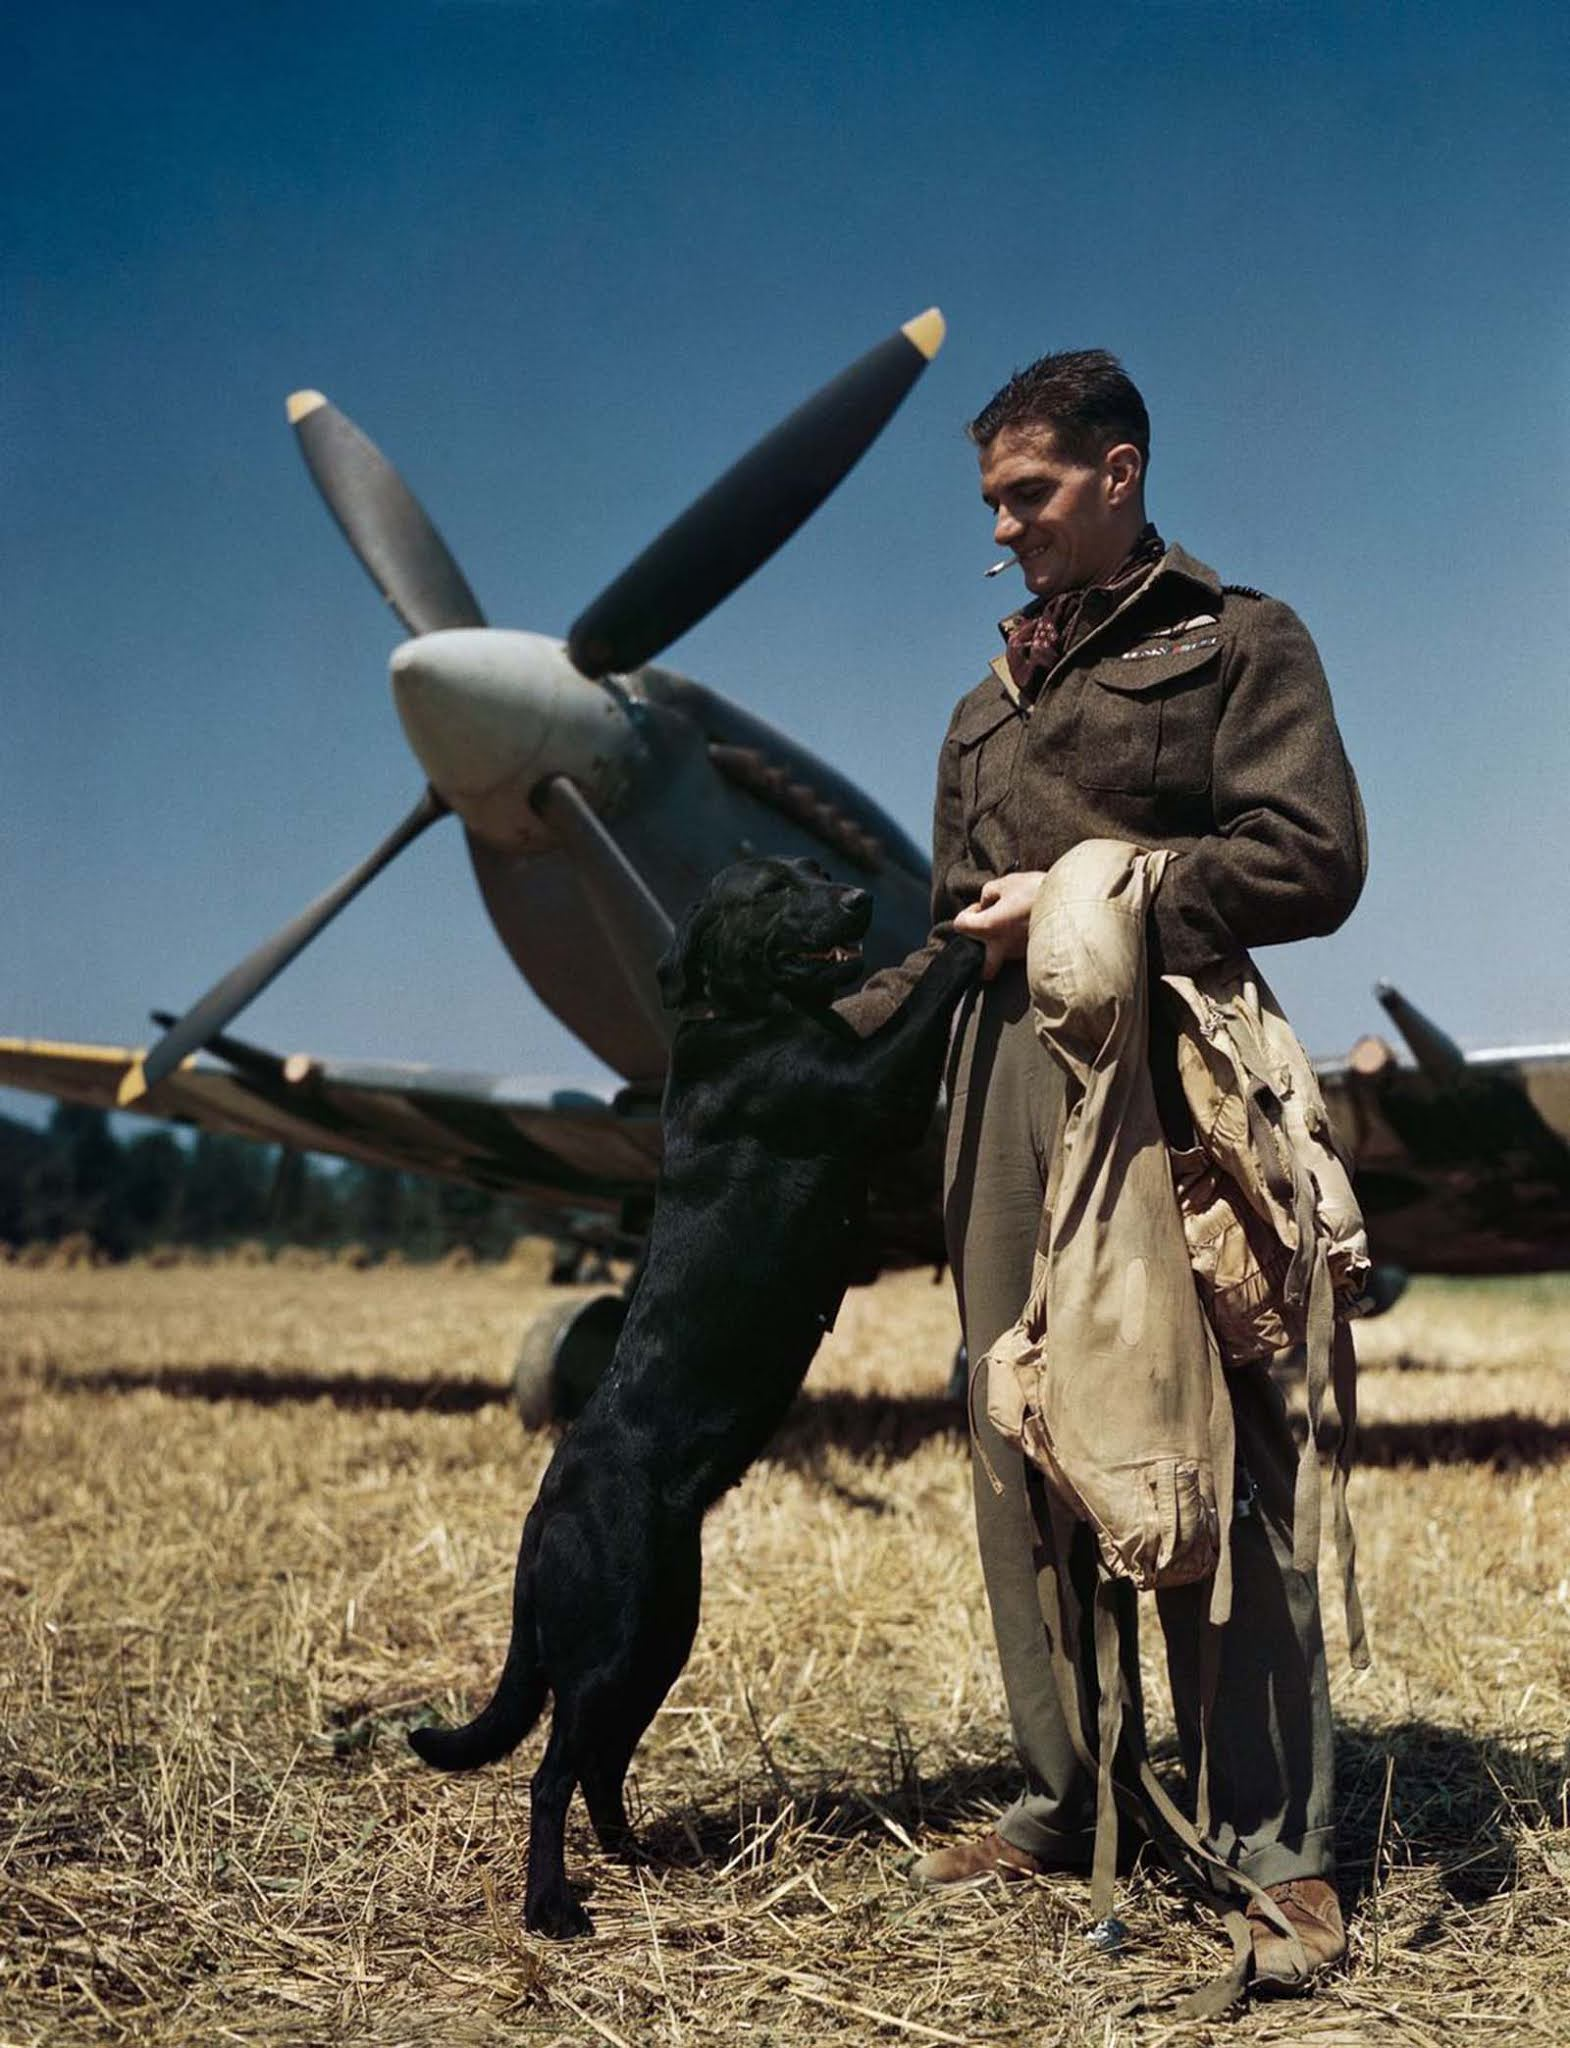 The RAF's top-scoring fighter pilot, Wing Commander James 'Johnnie' Johnson, with his Spitfire and pet Labrador 'Sally' in Normandy. 1944.